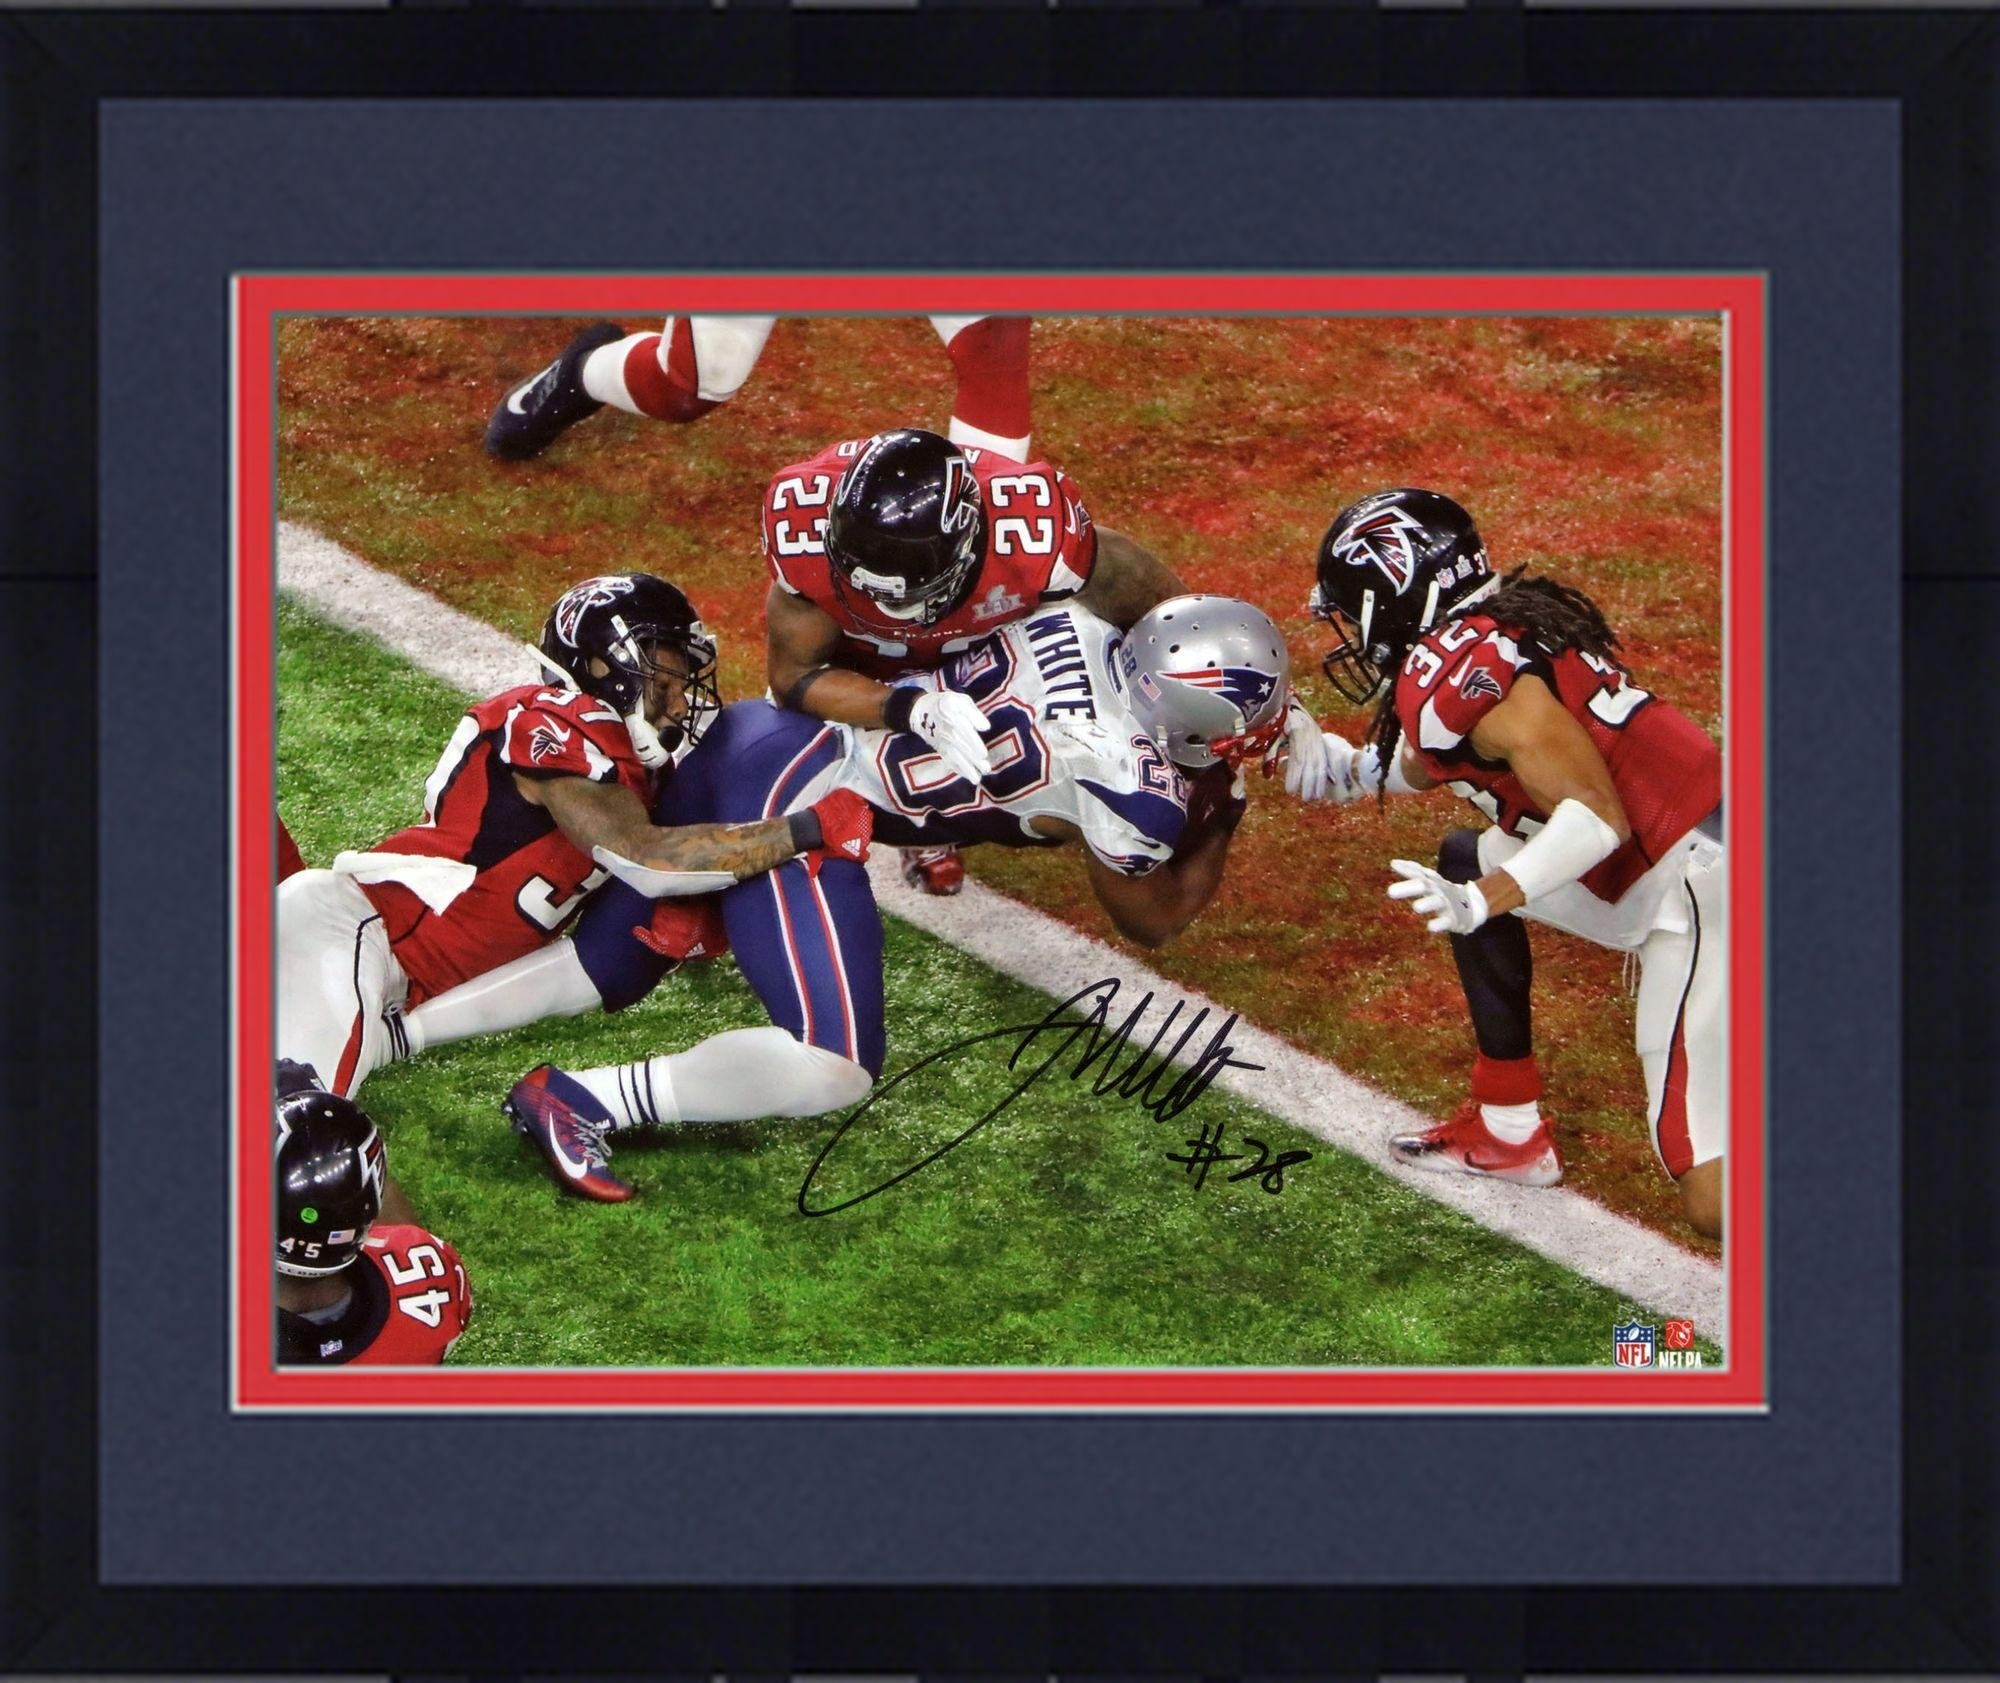 "Framed James White New England Patriots Autographed 8"" x 10"" Super Bowl LI Champions Game Winning Touchdown Photograph Fanatics Authentic Certified"